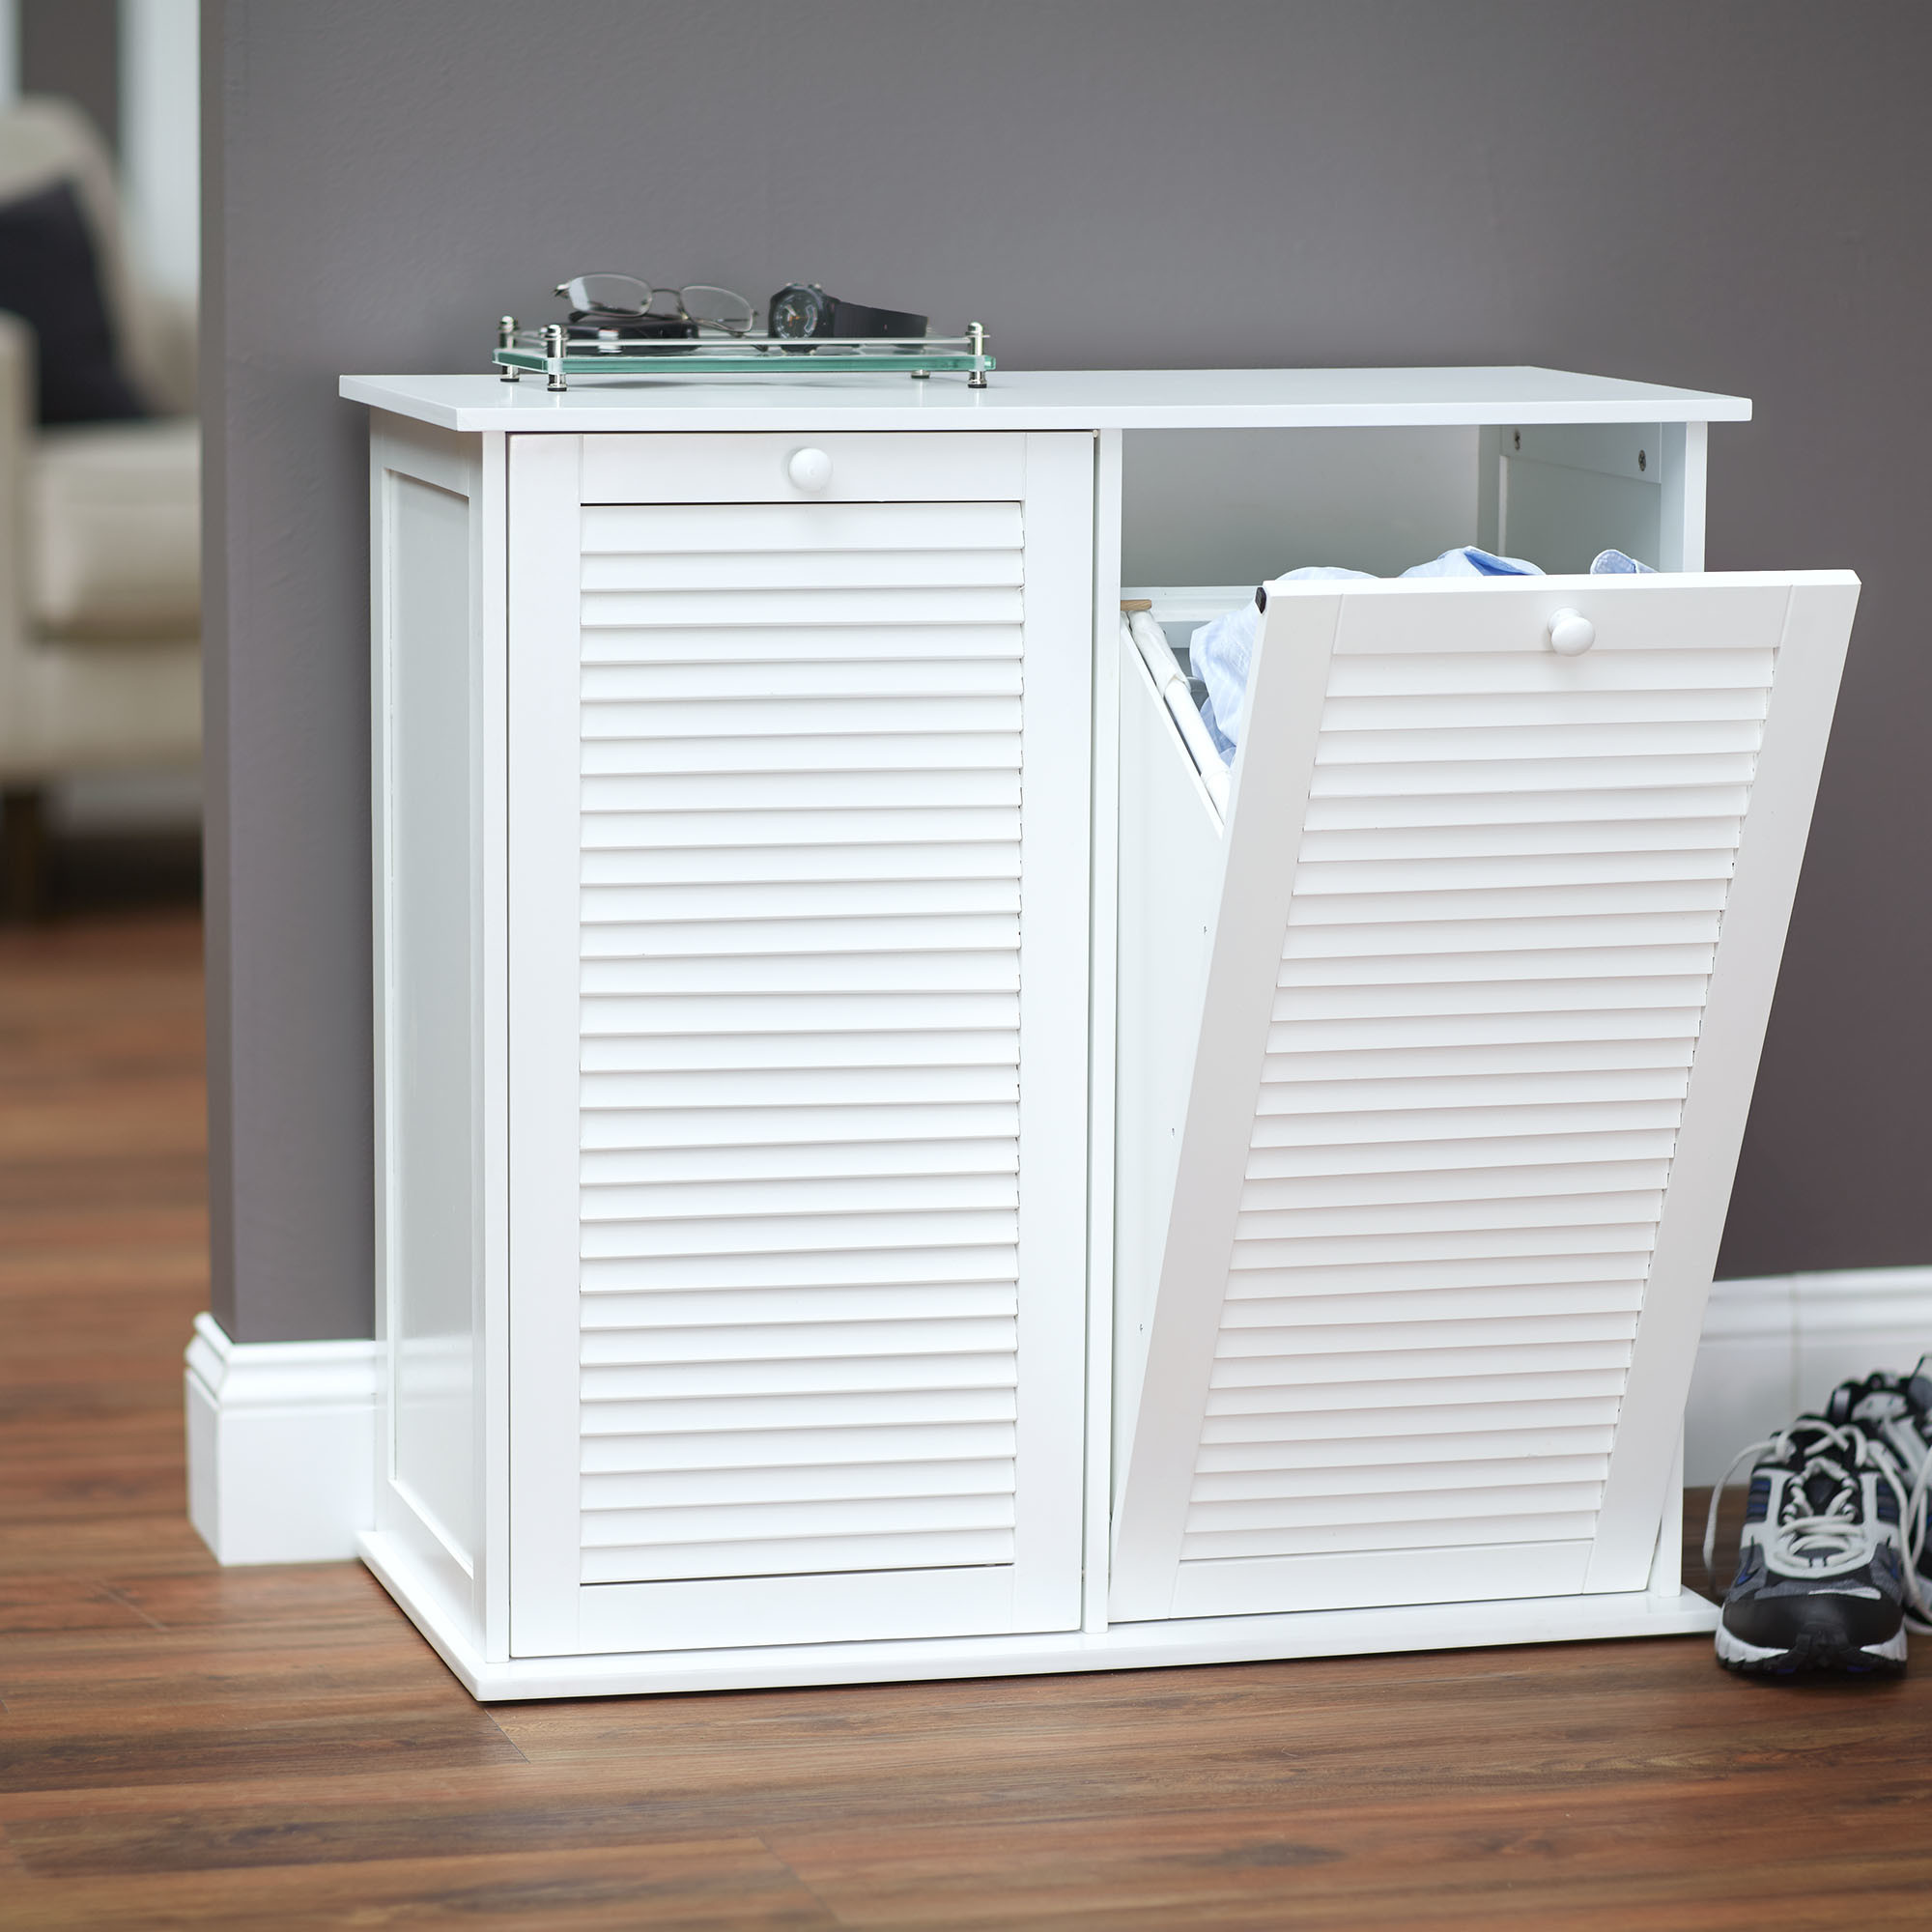 Best ideas about Laundry Sorter Cabinet . Save or Pin Household Essentials Tilt Out Laundry Sorter Cabinet with Now.